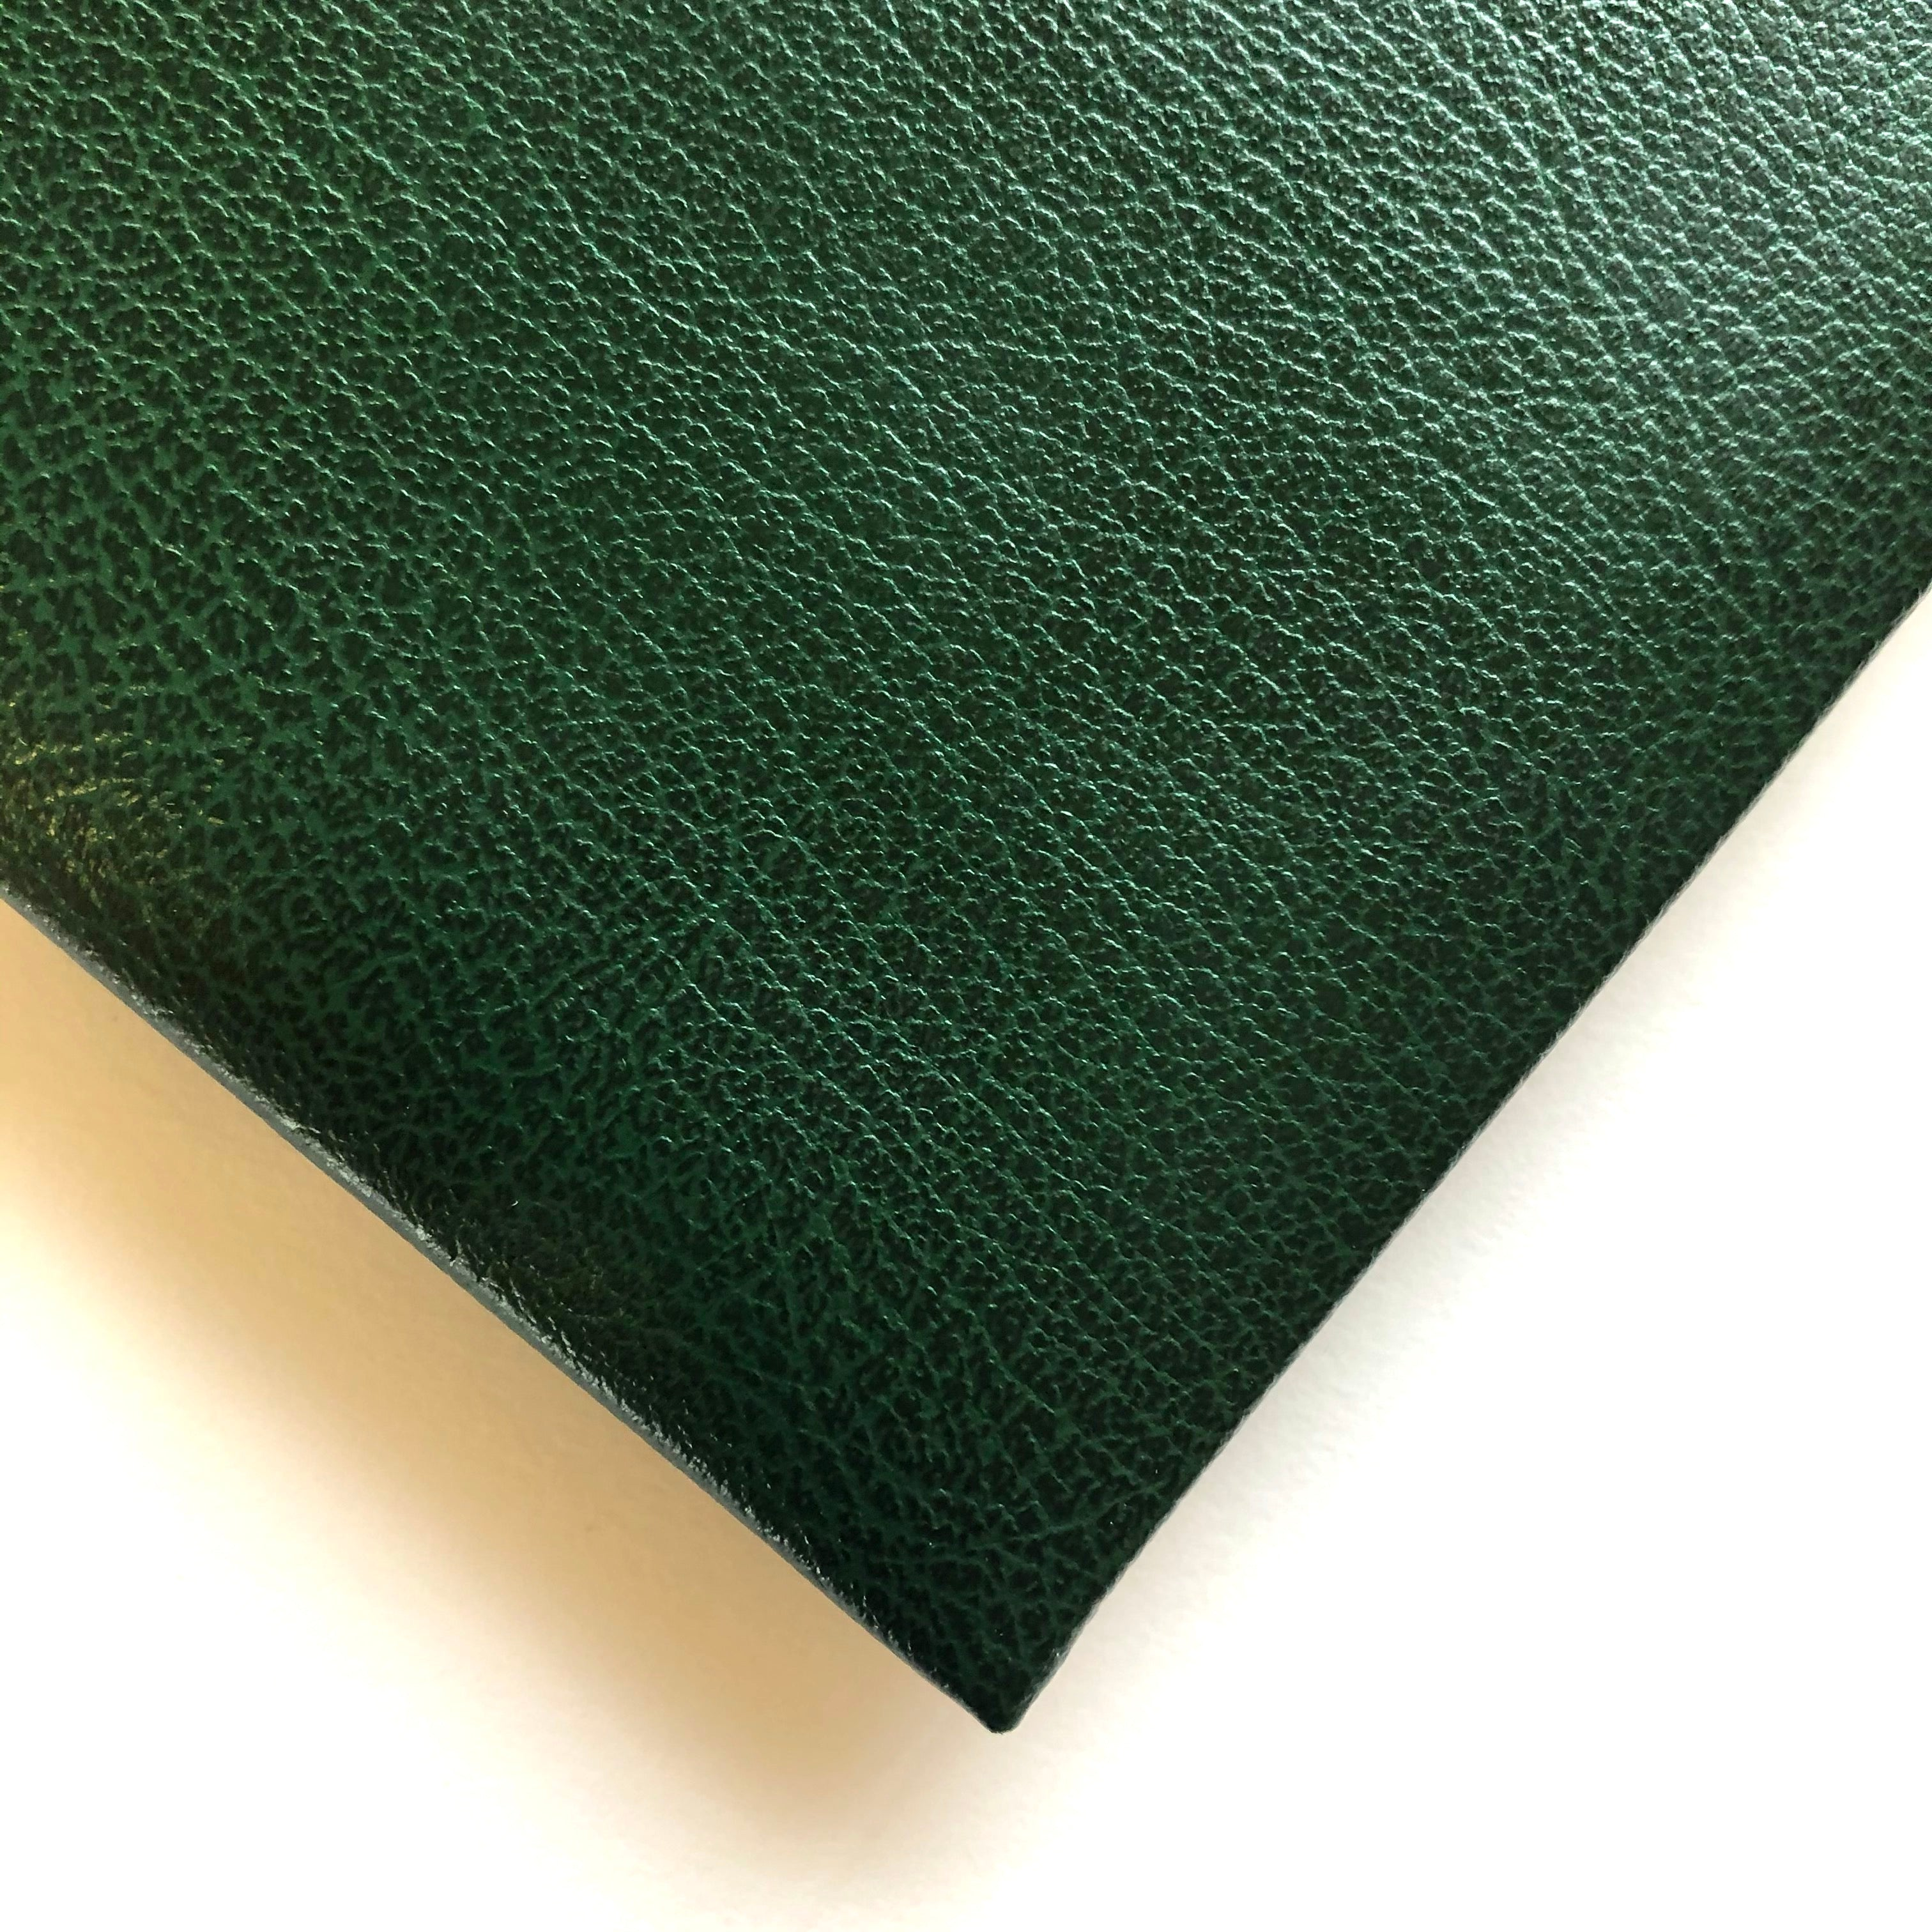 Swatch of Green Leather Visitors Book